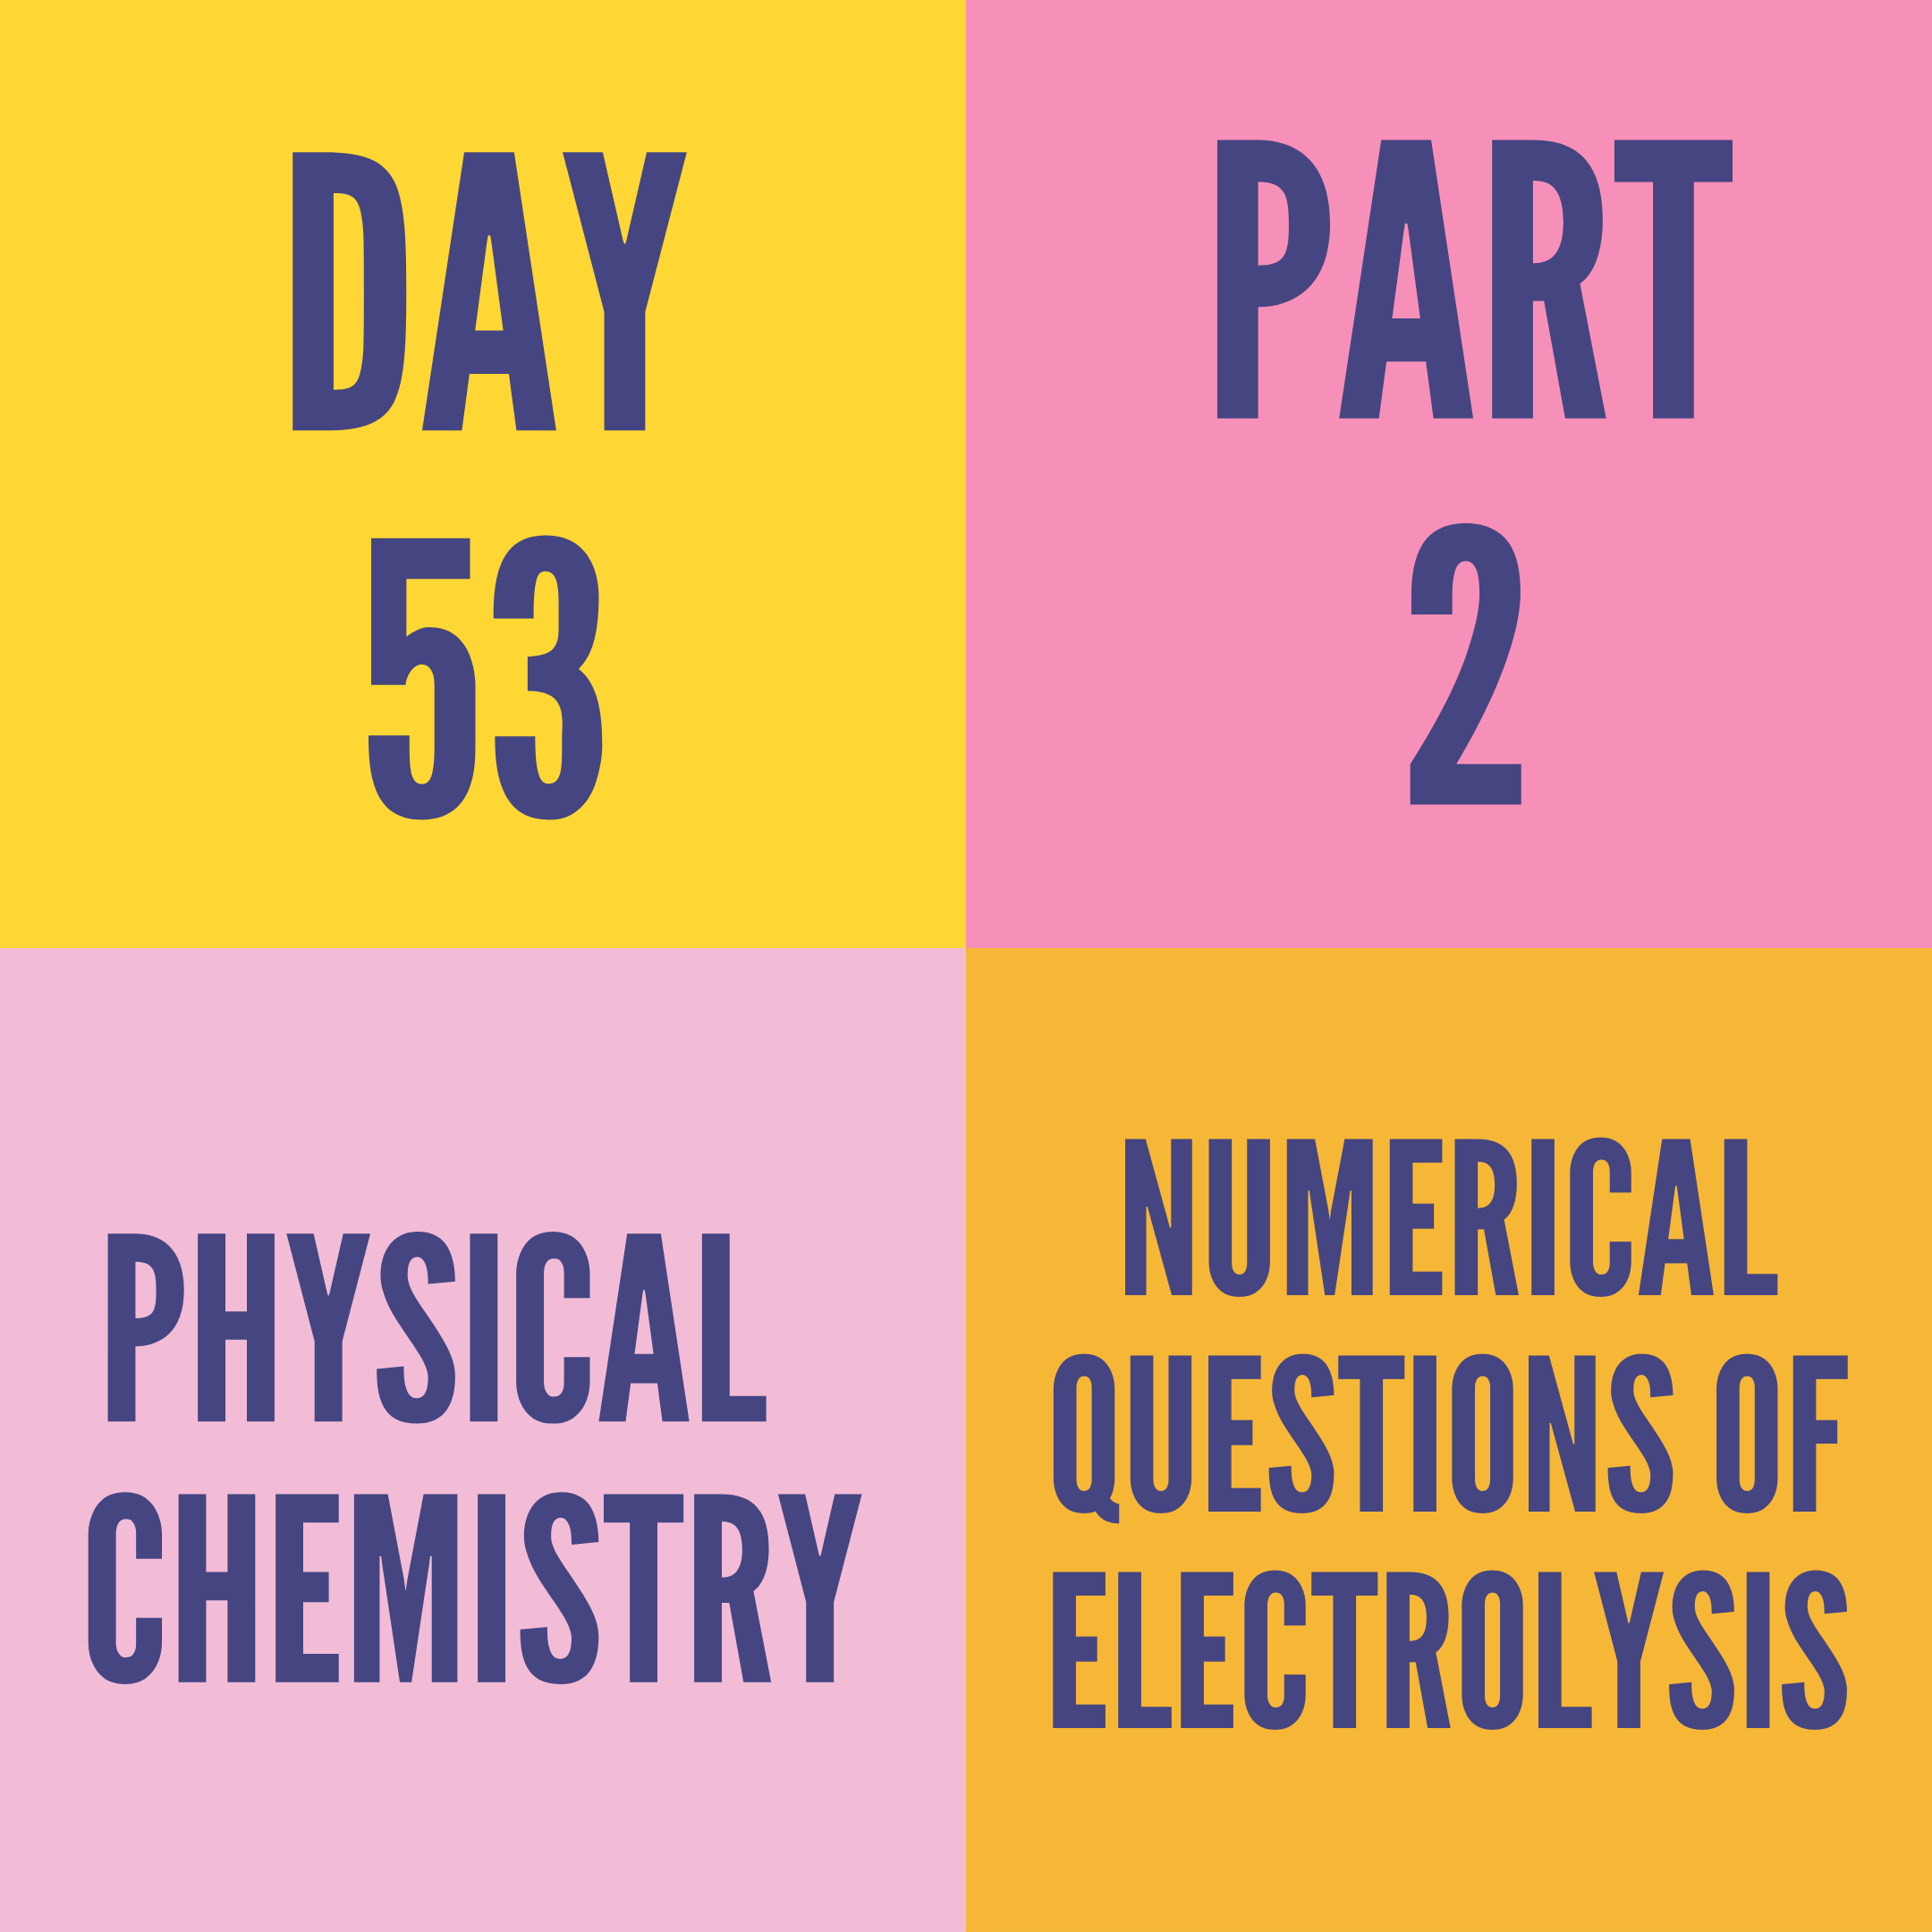 DAY-53 PART-2 NUMERICAL QUESTIONS OF ELECTROLYSIS